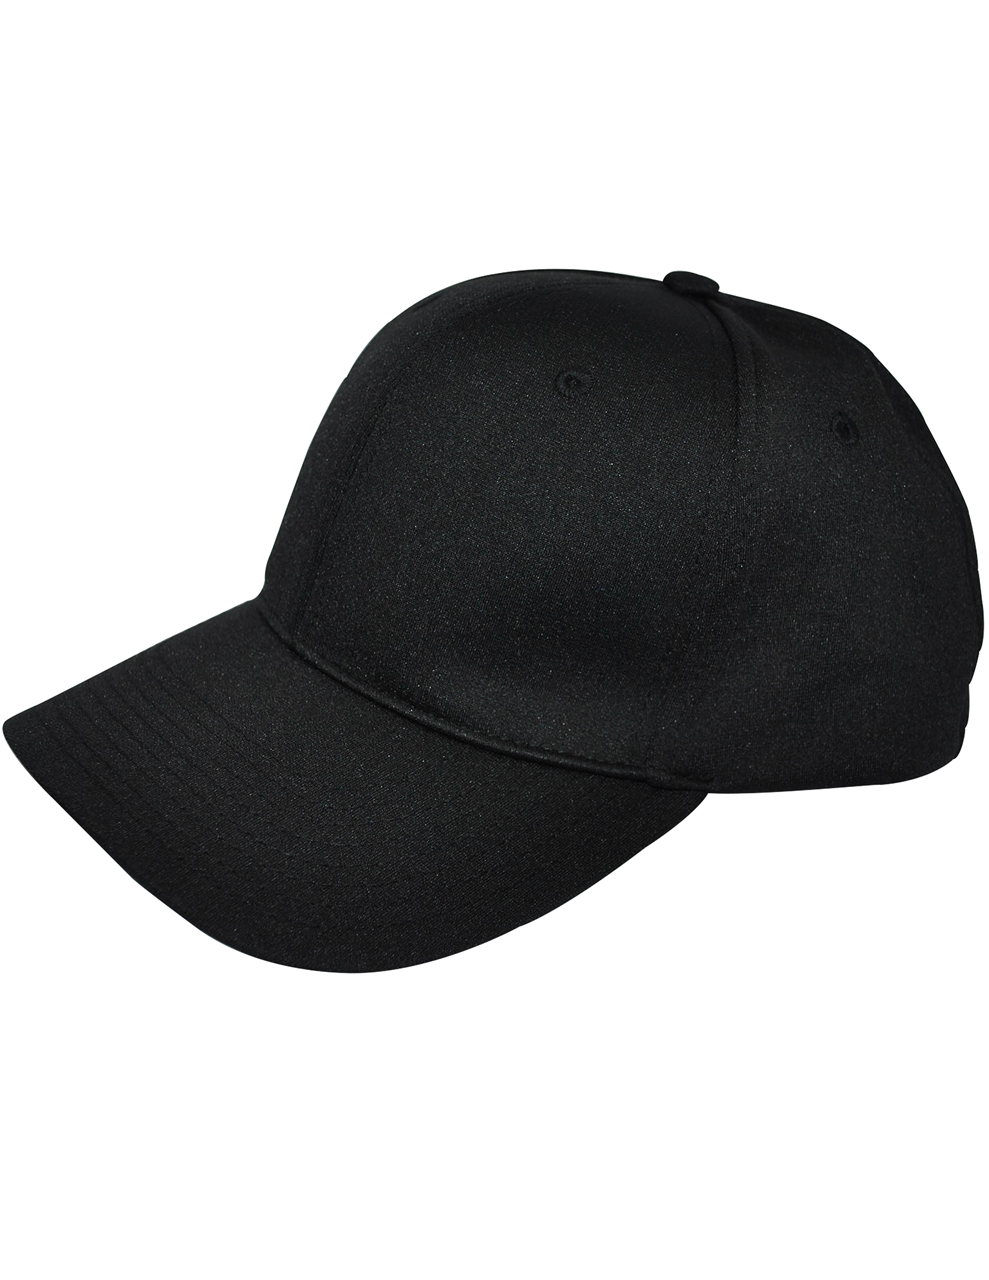 babe ruth league online store  smitty umpire field cap